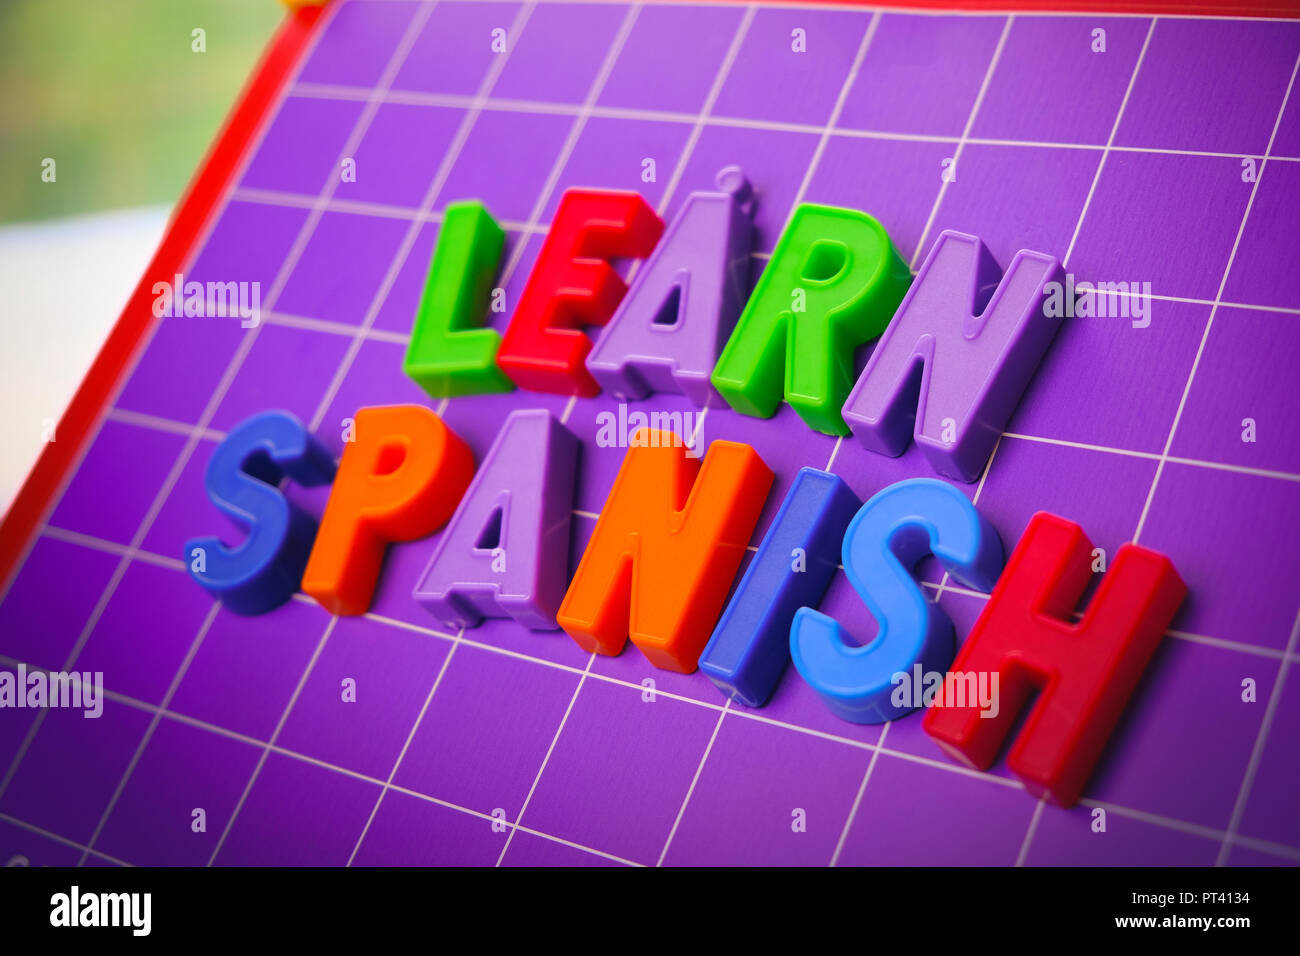 learn spanish language alphabet on magnets letters  - Stock Image